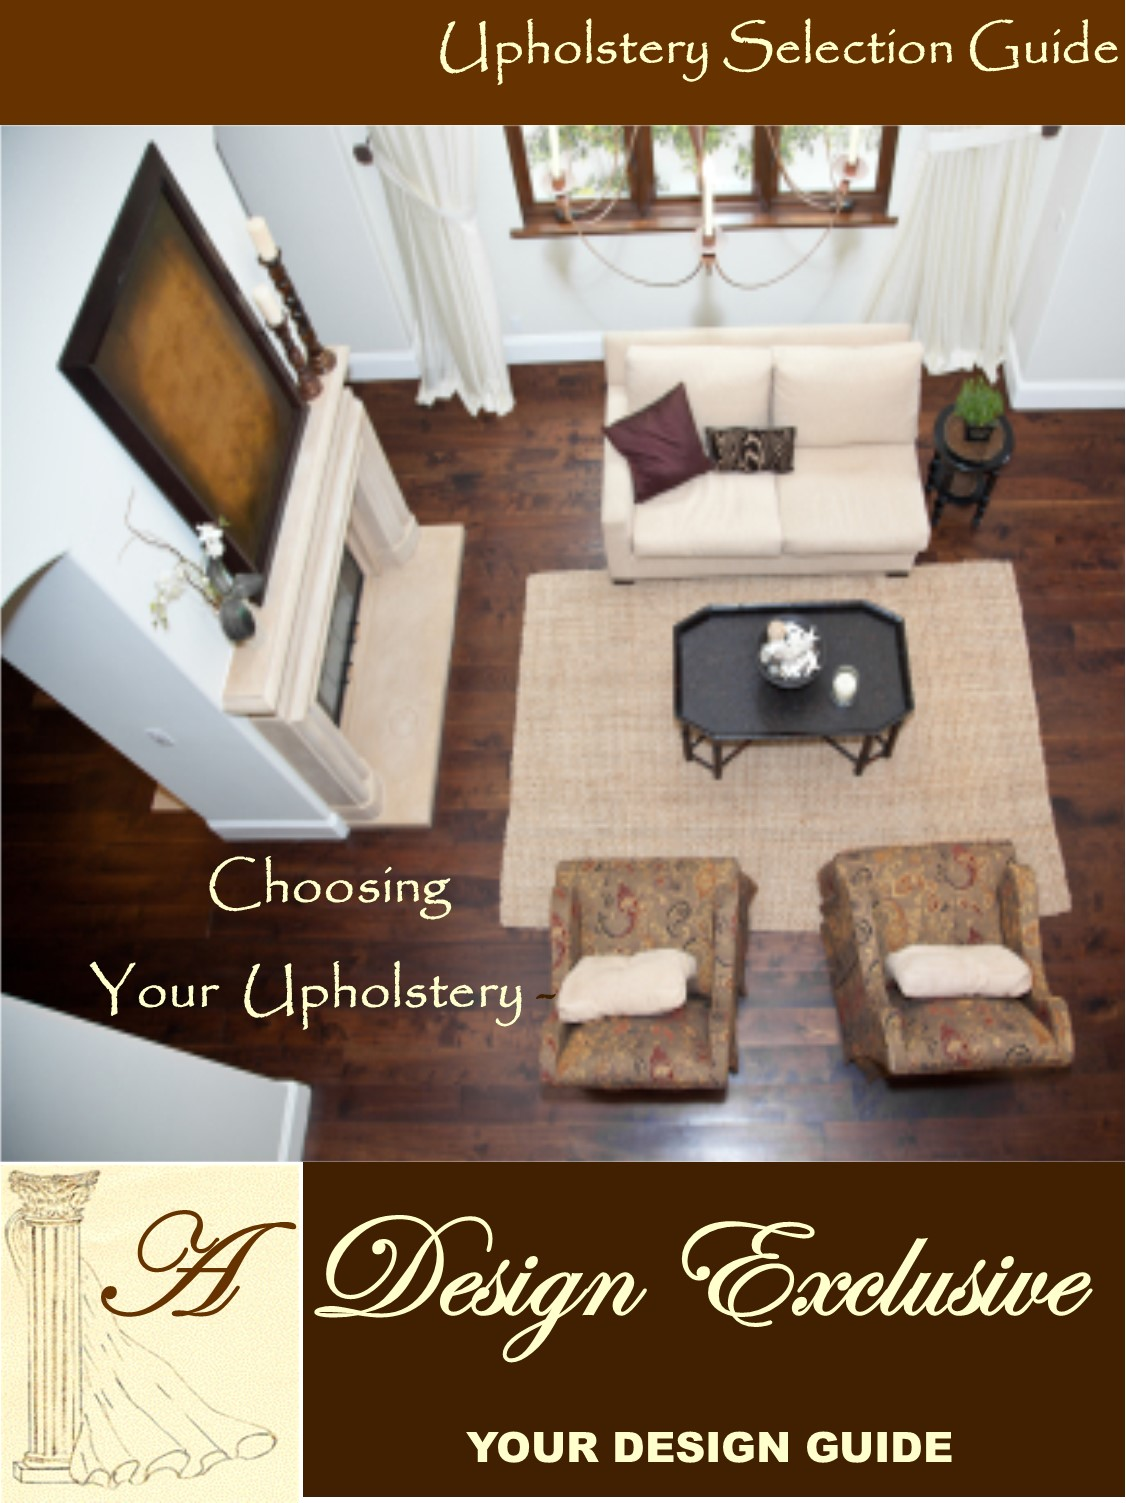 Upholstery Selection Guide